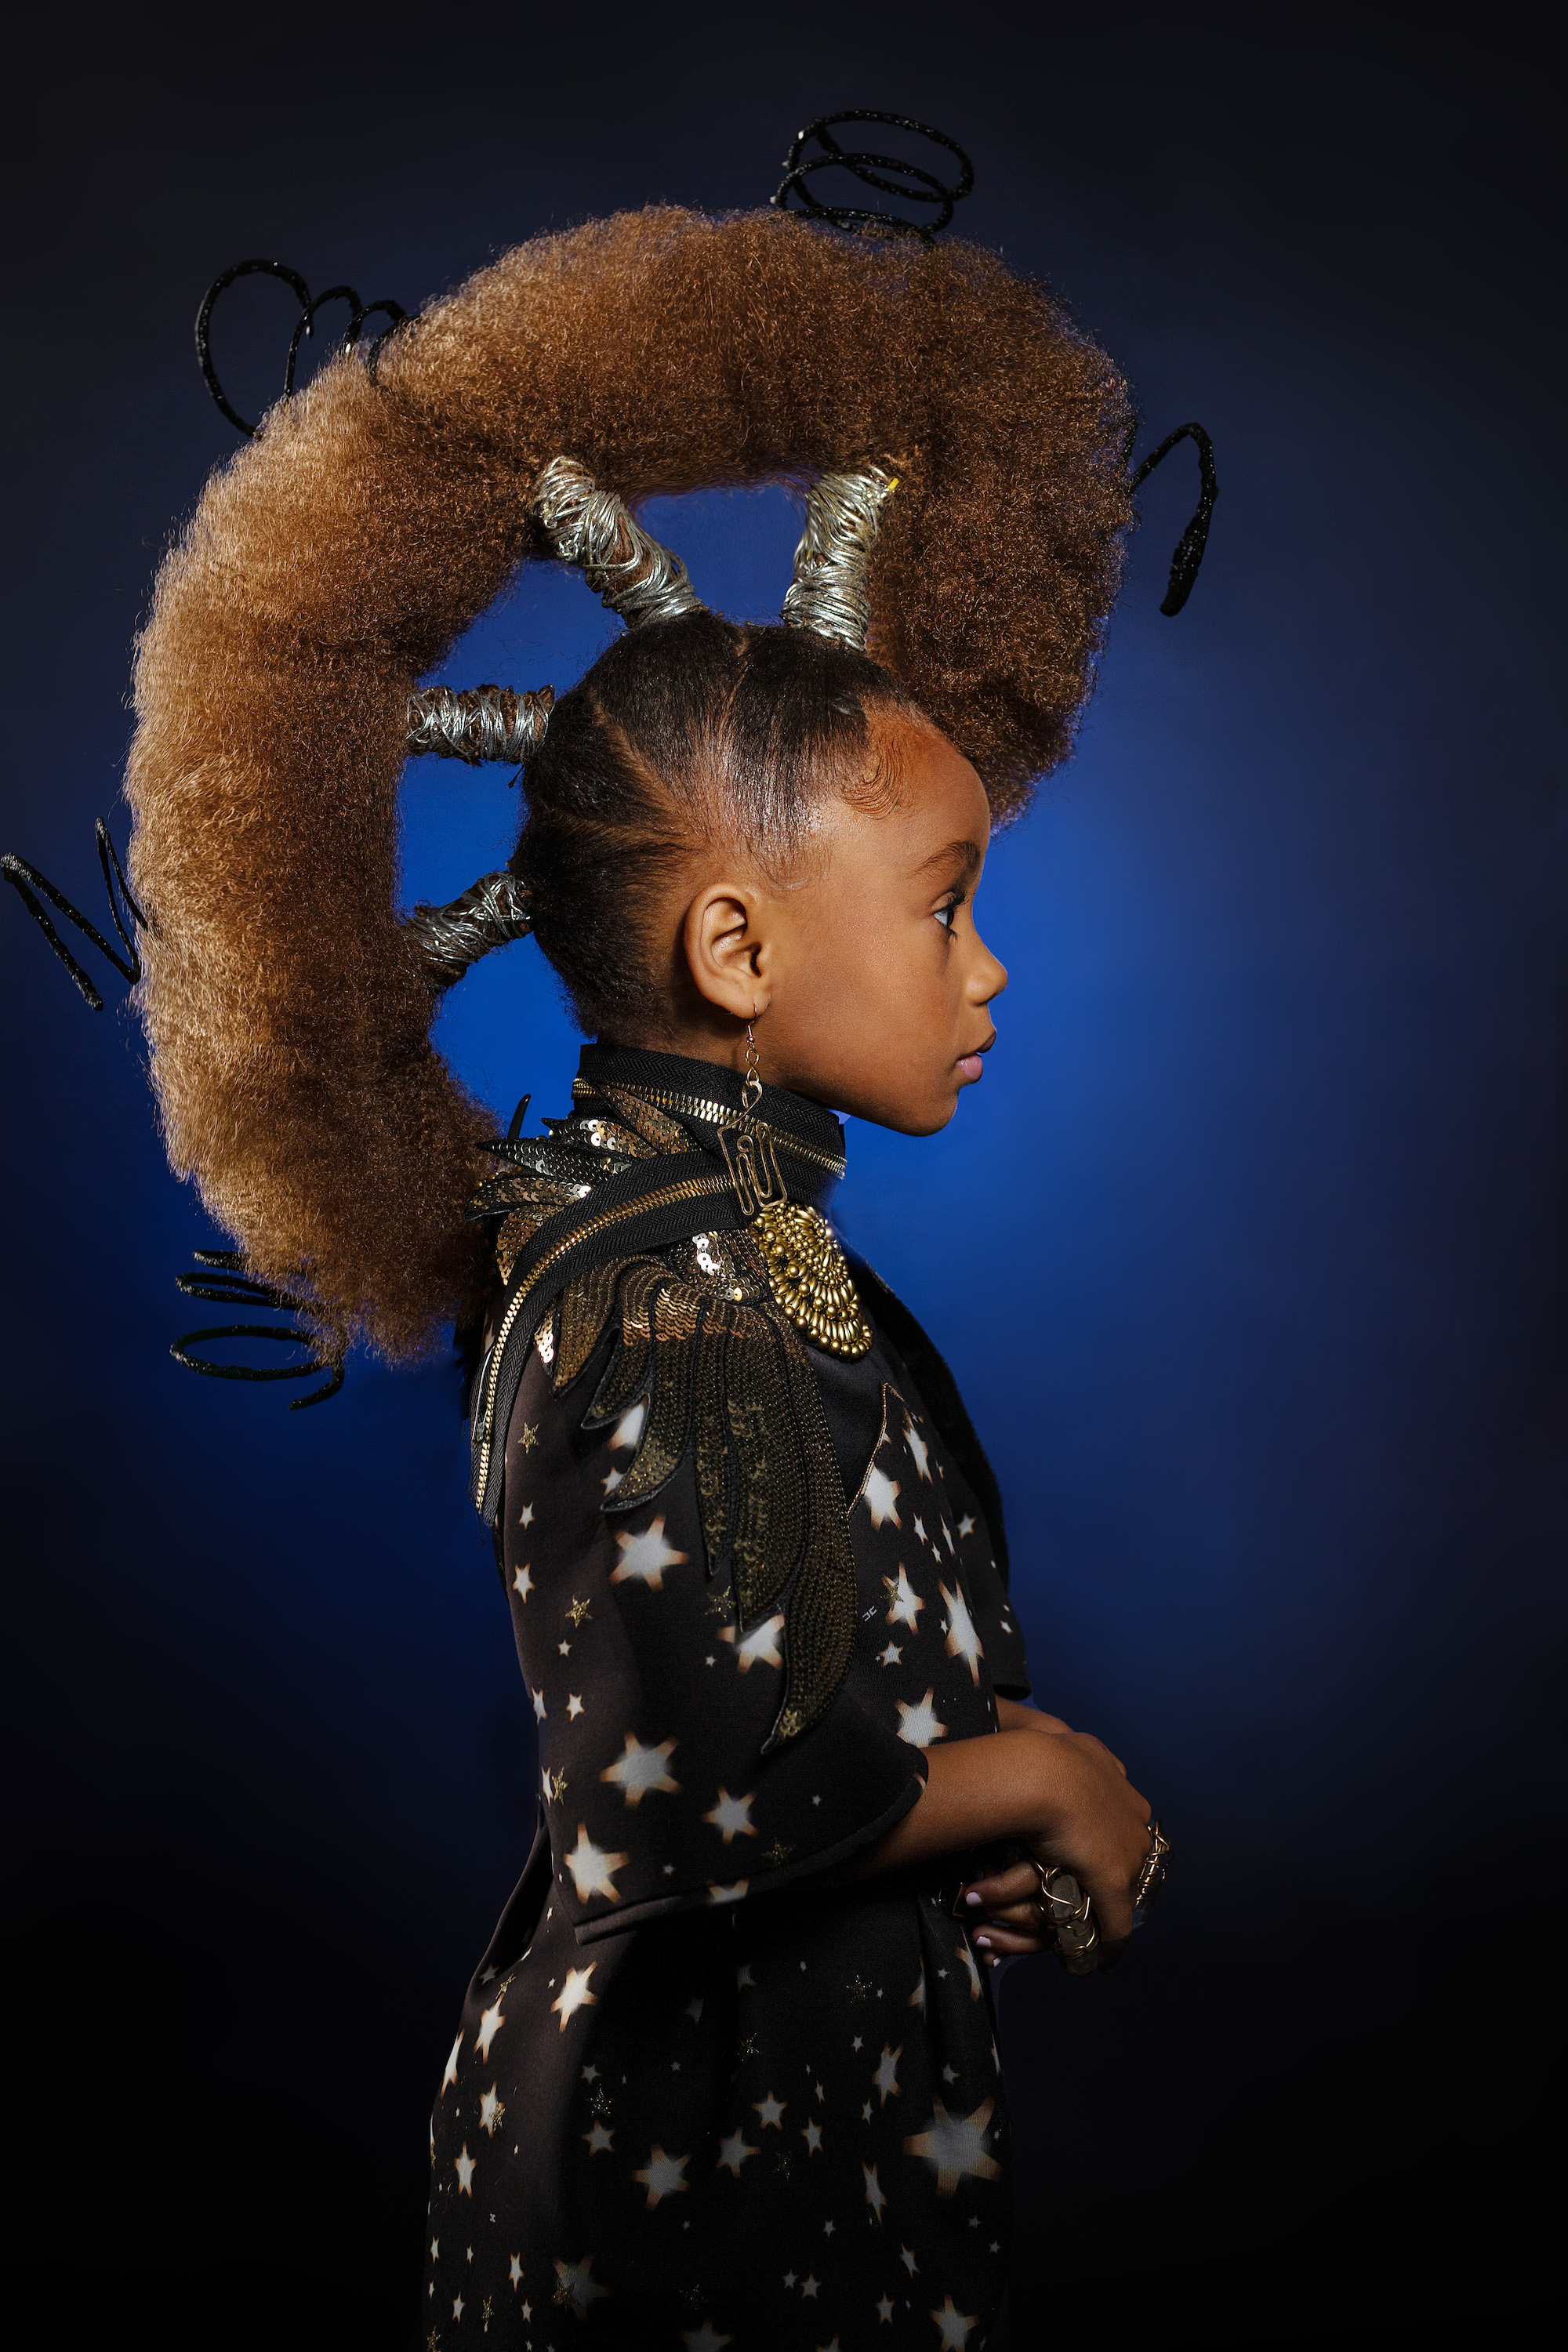 AfroArt Photo Series Challenges Beauty Standards with Young Black Models